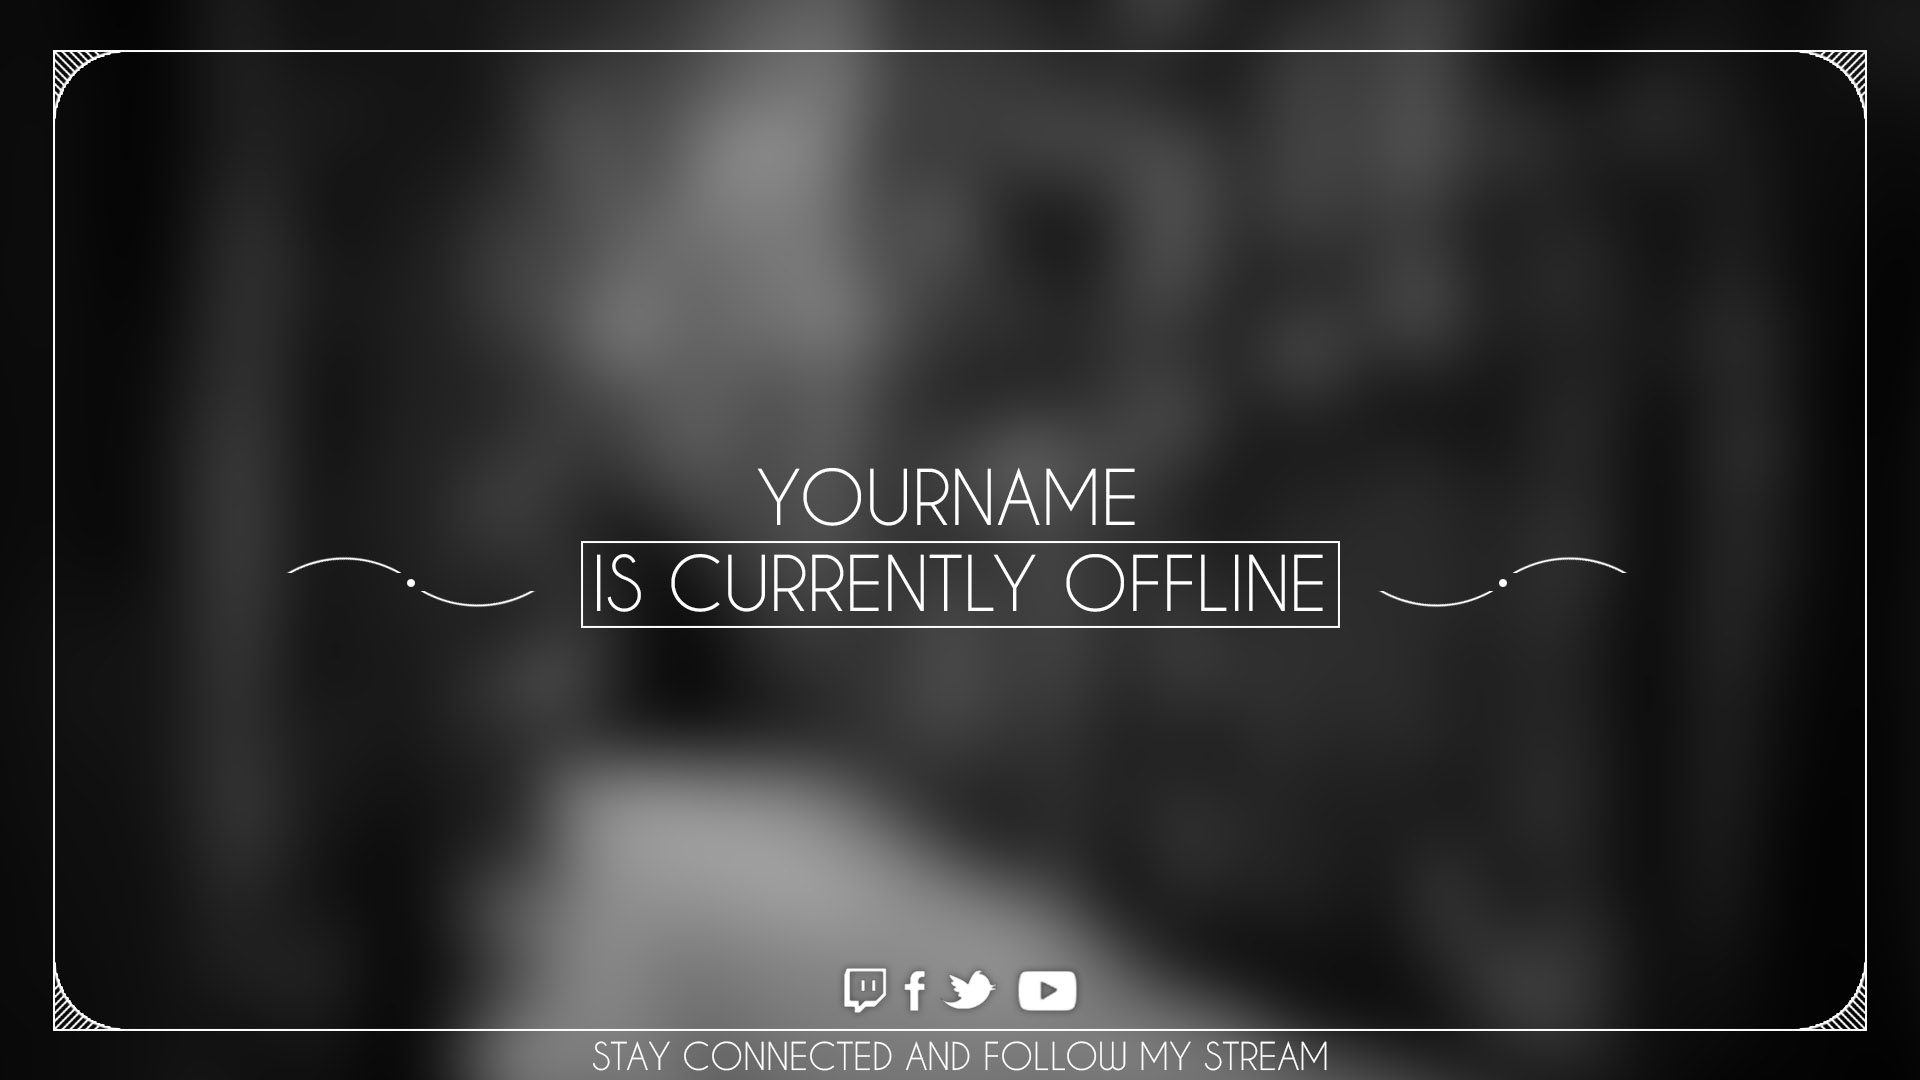 alpha offline screen twitch with psd template download. Black Bedroom Furniture Sets. Home Design Ideas